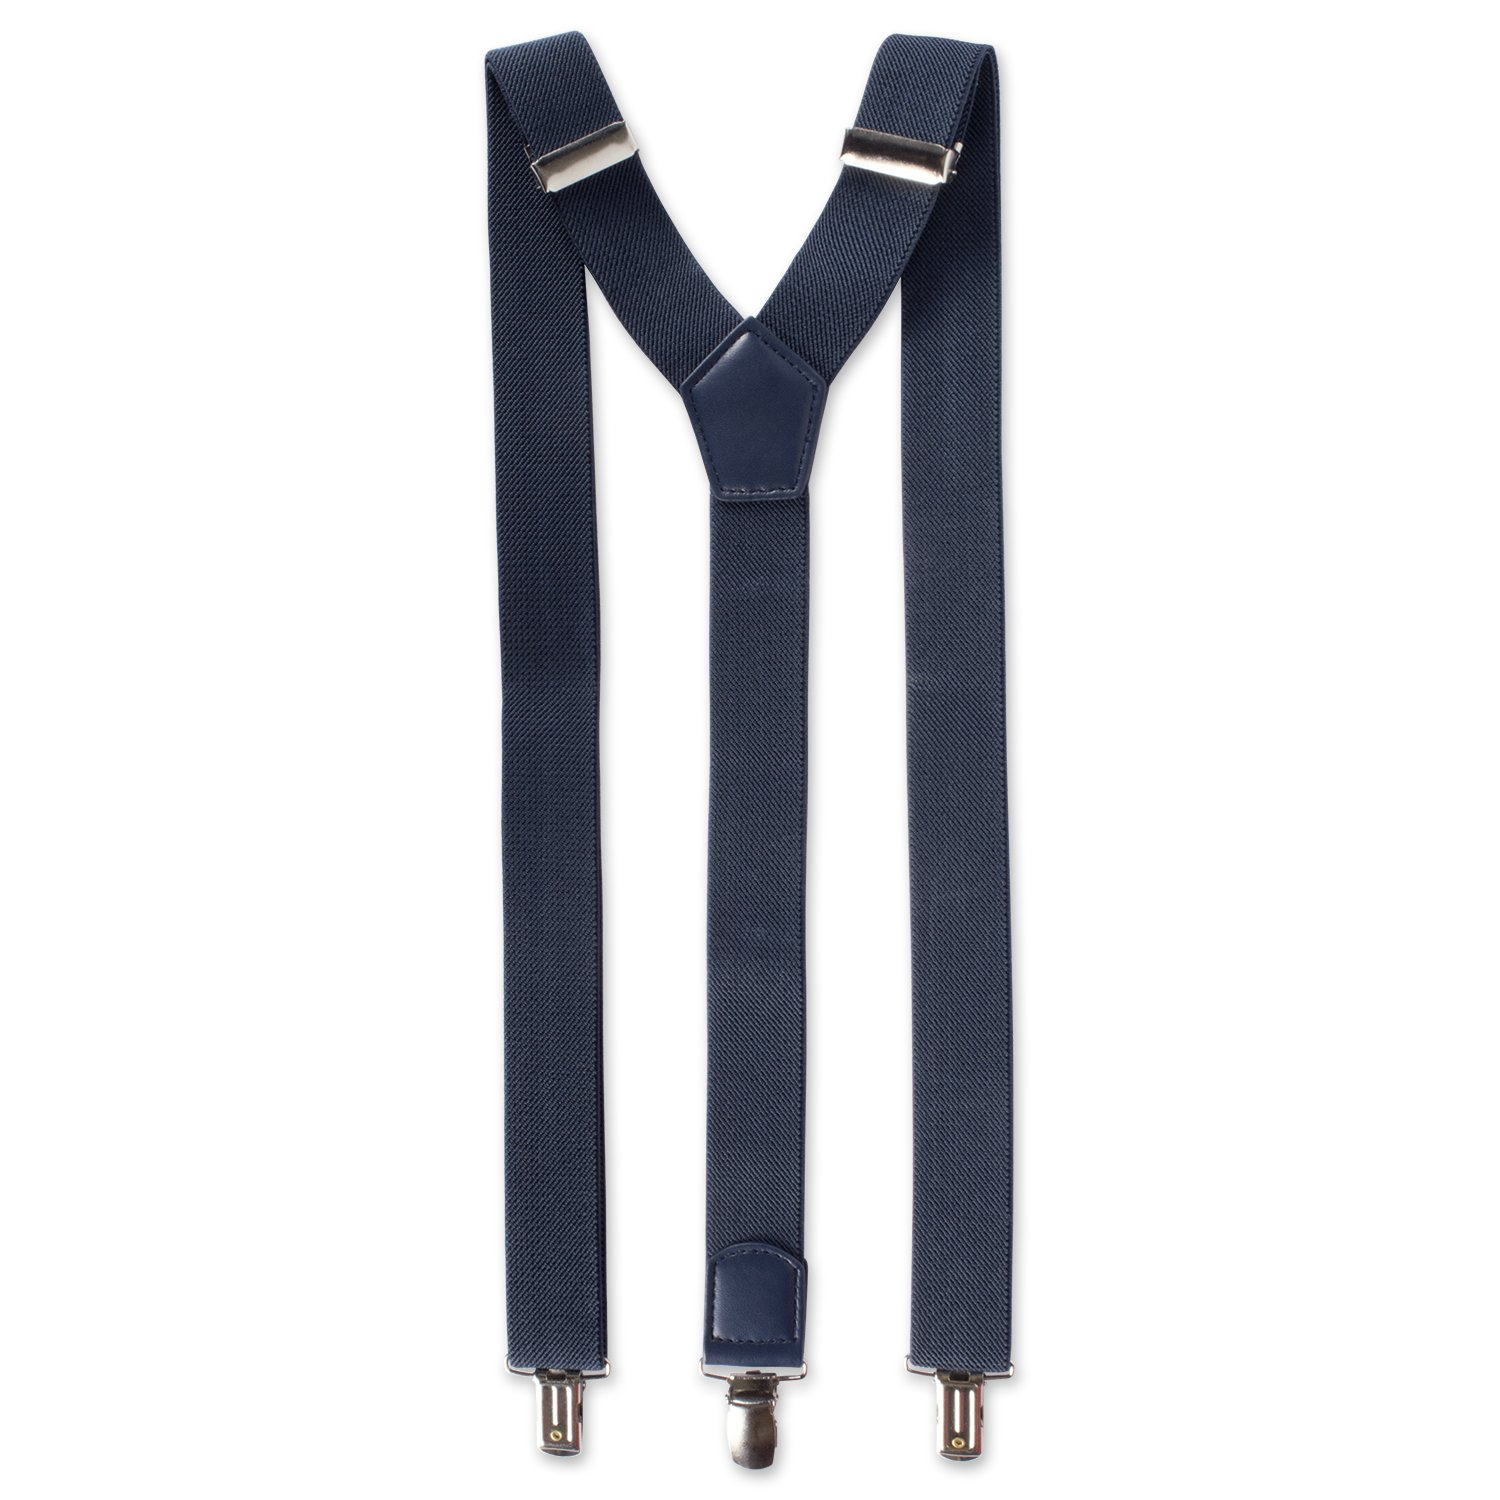 E-Living Store Men's 1.18 inch (30 mm) Woven Expandable Braided Stretch Suspenders w/ Heavy Duty Clips, (Available in Multiple Colors), Navy